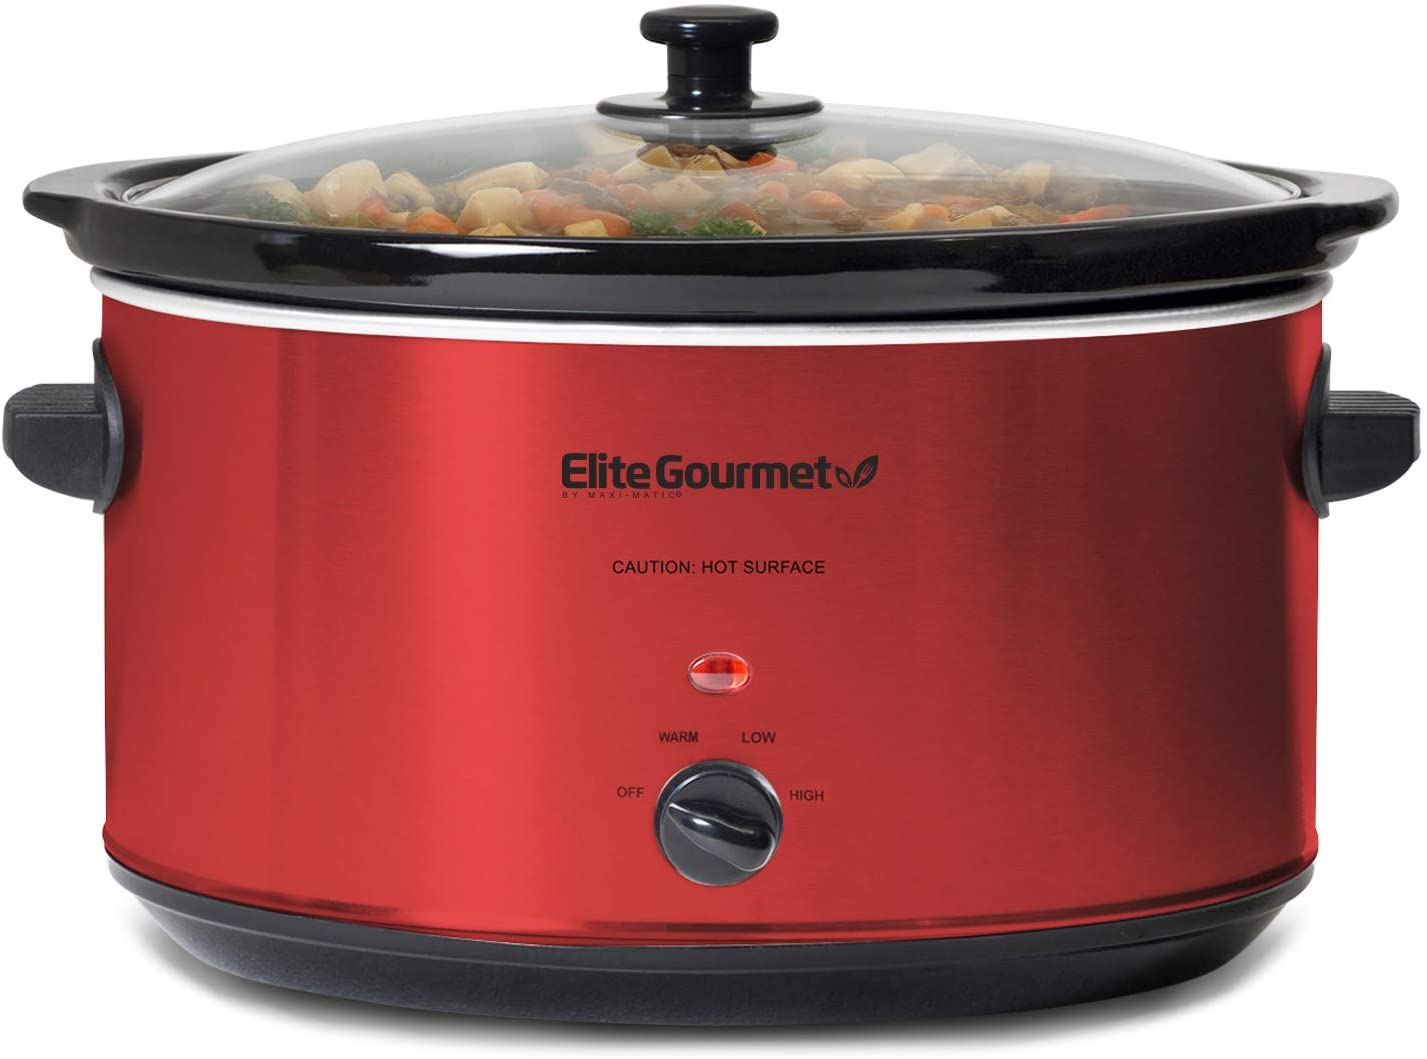 Elite Gourmet MST-900RXT Electric Ceramic XL Jumbo Slow Cooker Adjustable Temp, Entrees, Sauces, Stews & Dips, Dishwasher Safe Glass Lid & Crock, 8.5 Quart, Red